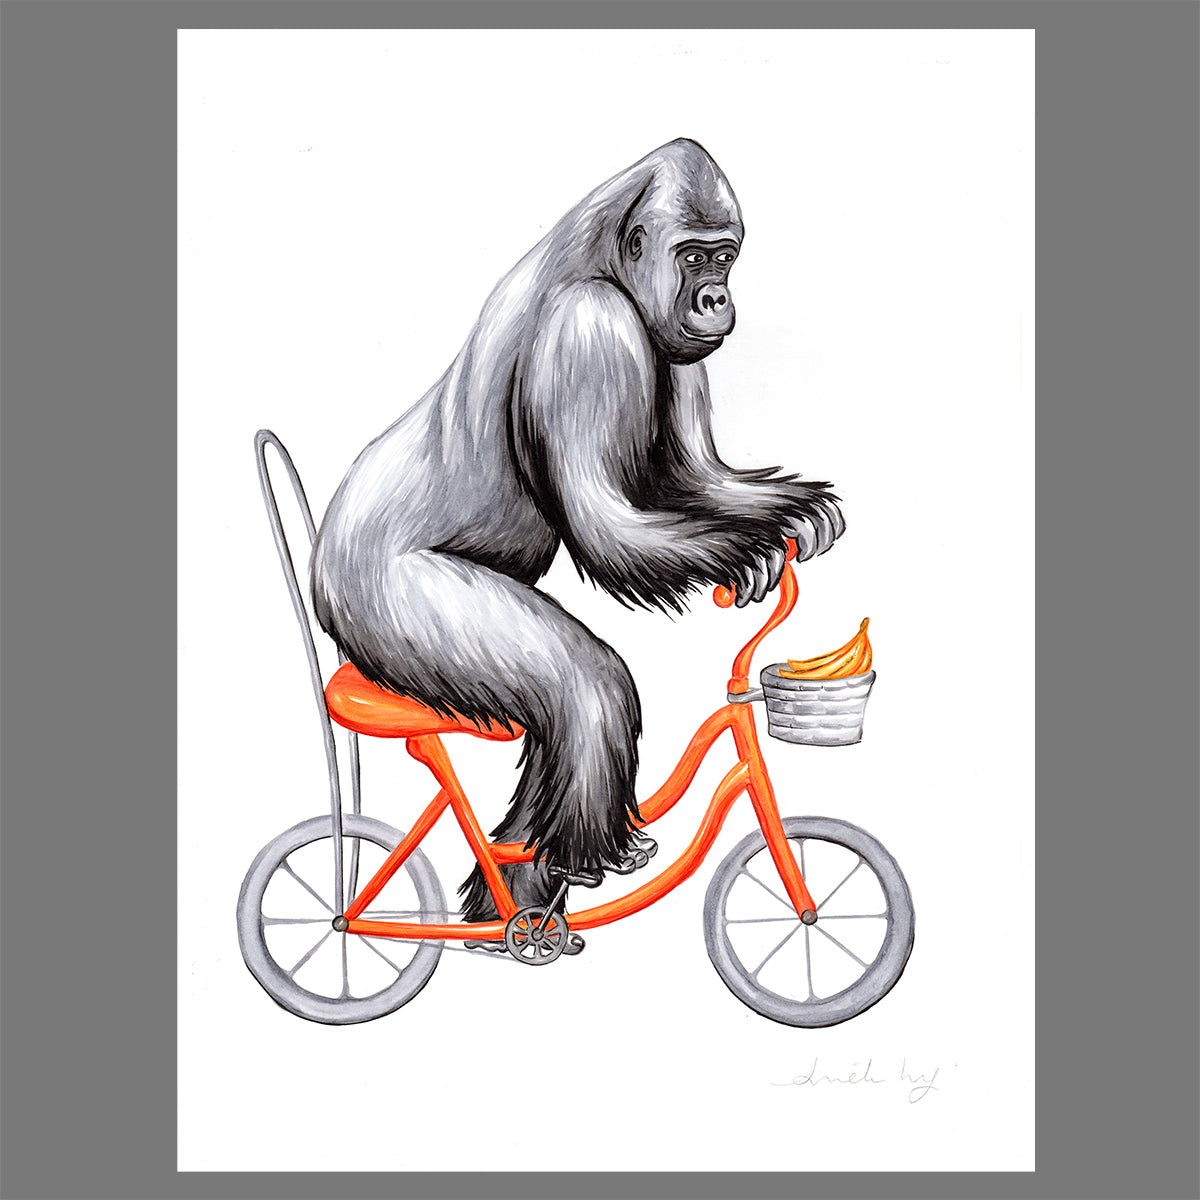 Gorilla on a bike - Original Artwork - Amelie Legault